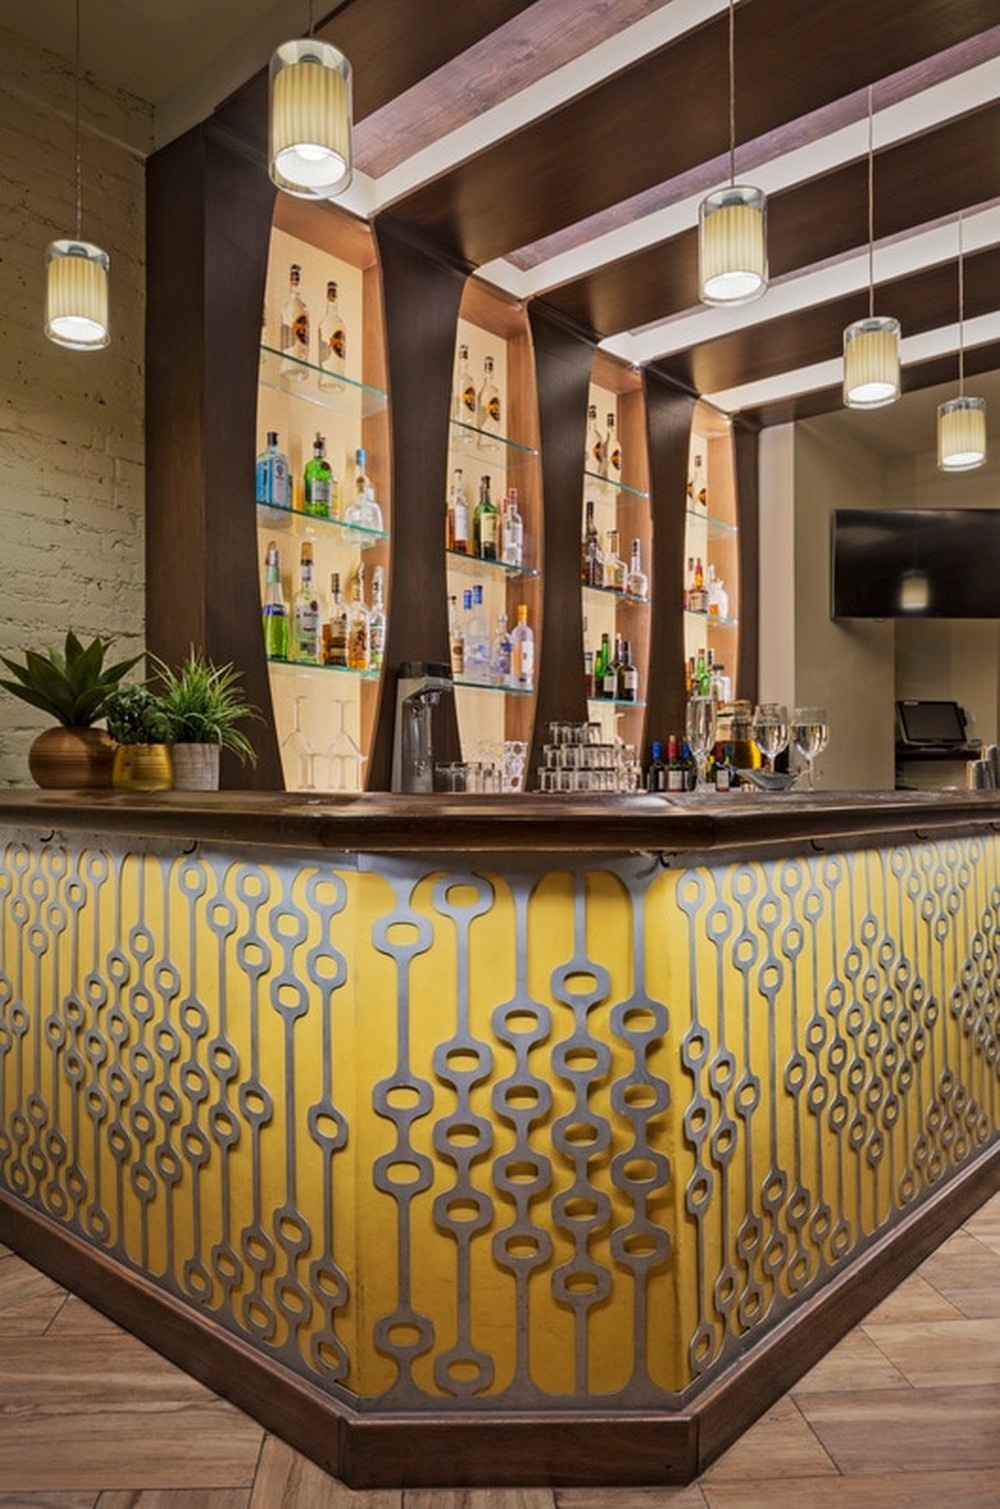 New York's Ipanema Restaurant Was Designed By DiGuiseppe Design Studio diguiseppe New York's Ipanema Restaurant Was Designed By DiGuiseppe Design Studio New Yorks Ipanema Restaurant Was Designed By DiGuiseppe Design Studio 5